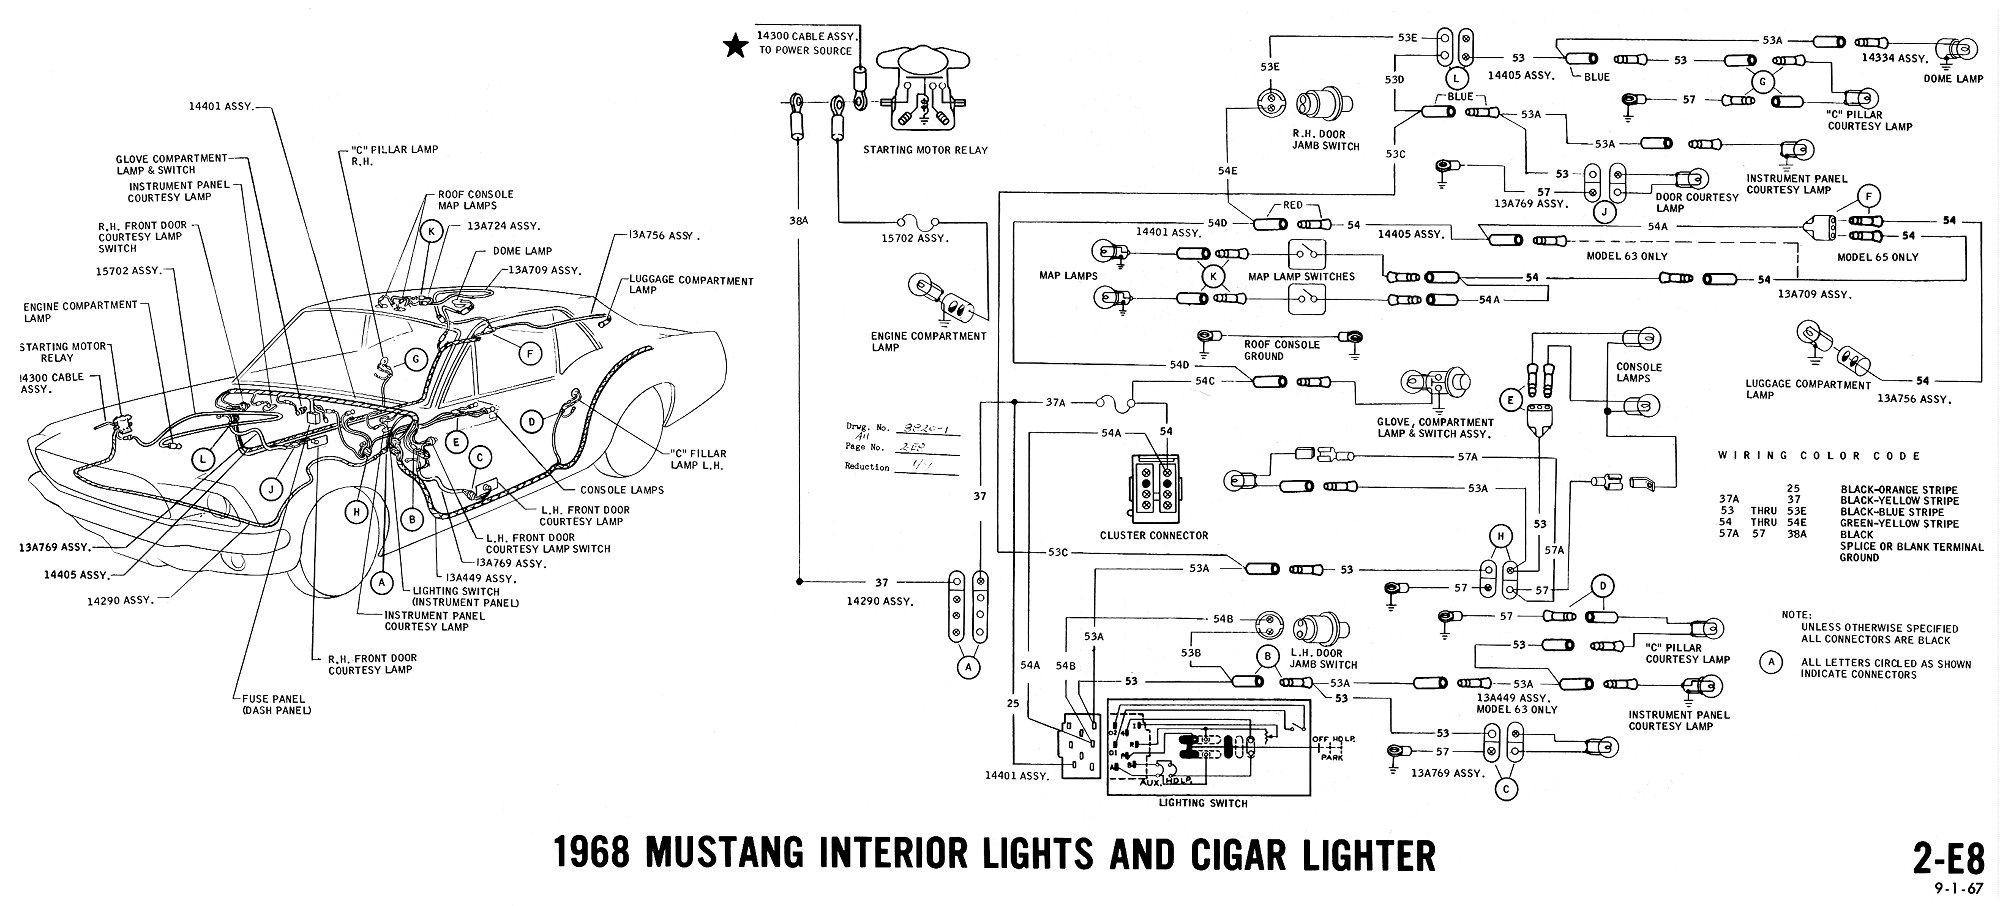 Install 1970 Mustang Dash Wiring Diagram - Www.toyskids.co • on 1970 mustang dash lights, 1970 mustang parts, 1970 mustang oil filter, 1970 mustang mach 2, 1970 mustang colors, 1970 mustang rear window trim, 1970 mustang hatchback, 1970 mustang ignition switch, ford mustang vacuum diagram, 1970 mustang sportsroof, 1970 mustang fuel pump, 1970 mustang notchback, 1969 mustang ignition switch diagram, 66 mustang electrical diagram, 1970 mustang wire harness, 2003 mustang fuse diagram, 1970 mustang black, 1970 mustang drive shaft, 70 ford mustang electrical diagram, 1970 mustang ford,